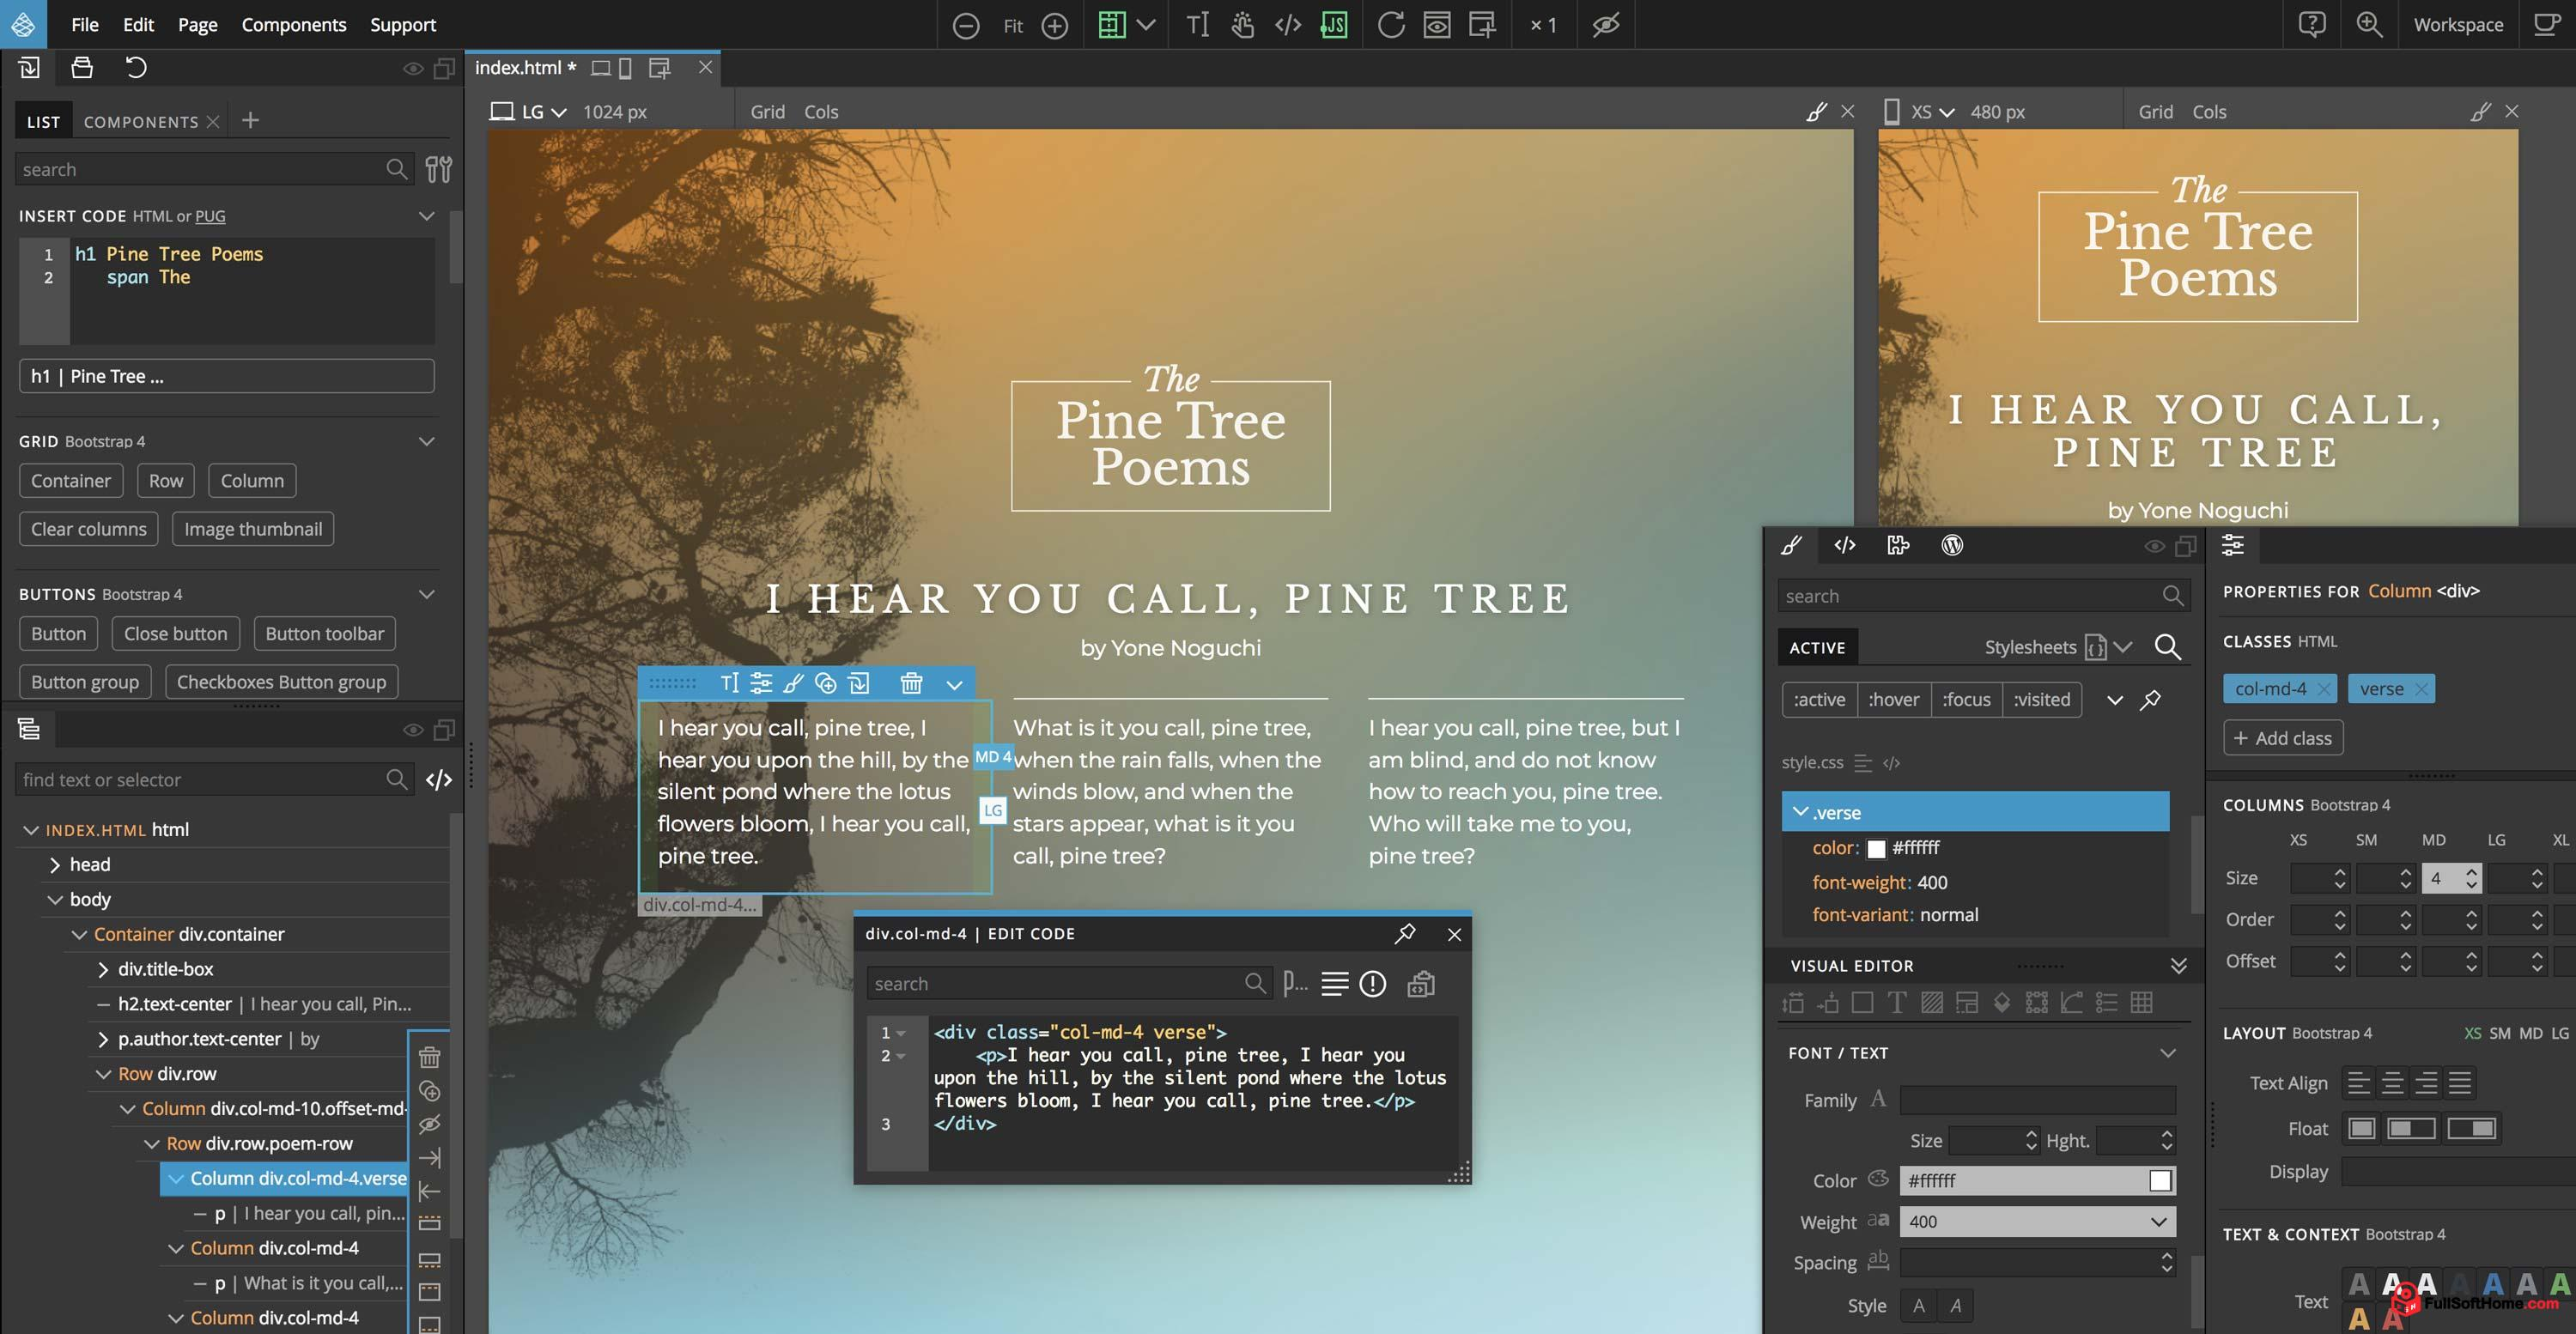 Pinegrow Web Editor [v5.3] Full (Windows+Mac+Linux) – Build modern websites faster and easier